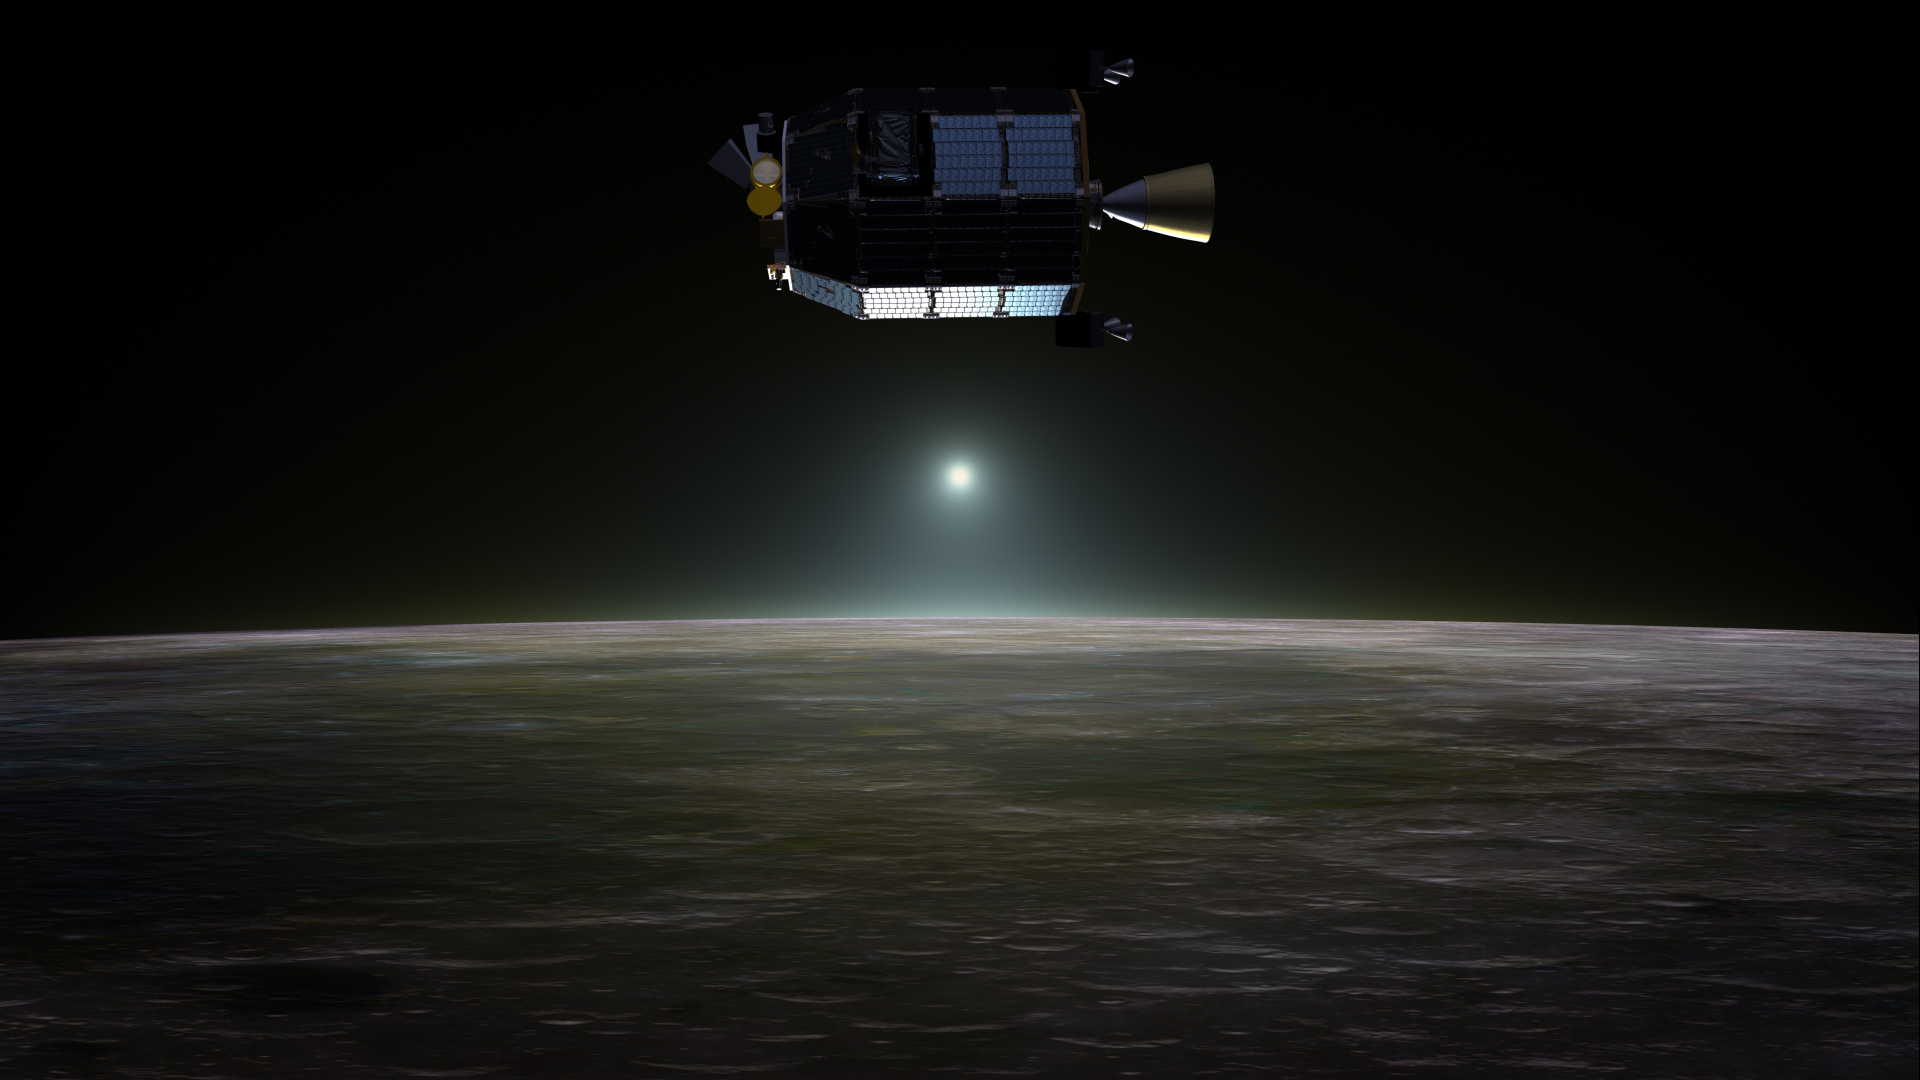 NASA's Lunar Atmosphere and Dust Environment Explorer (LADEE) spacecraft